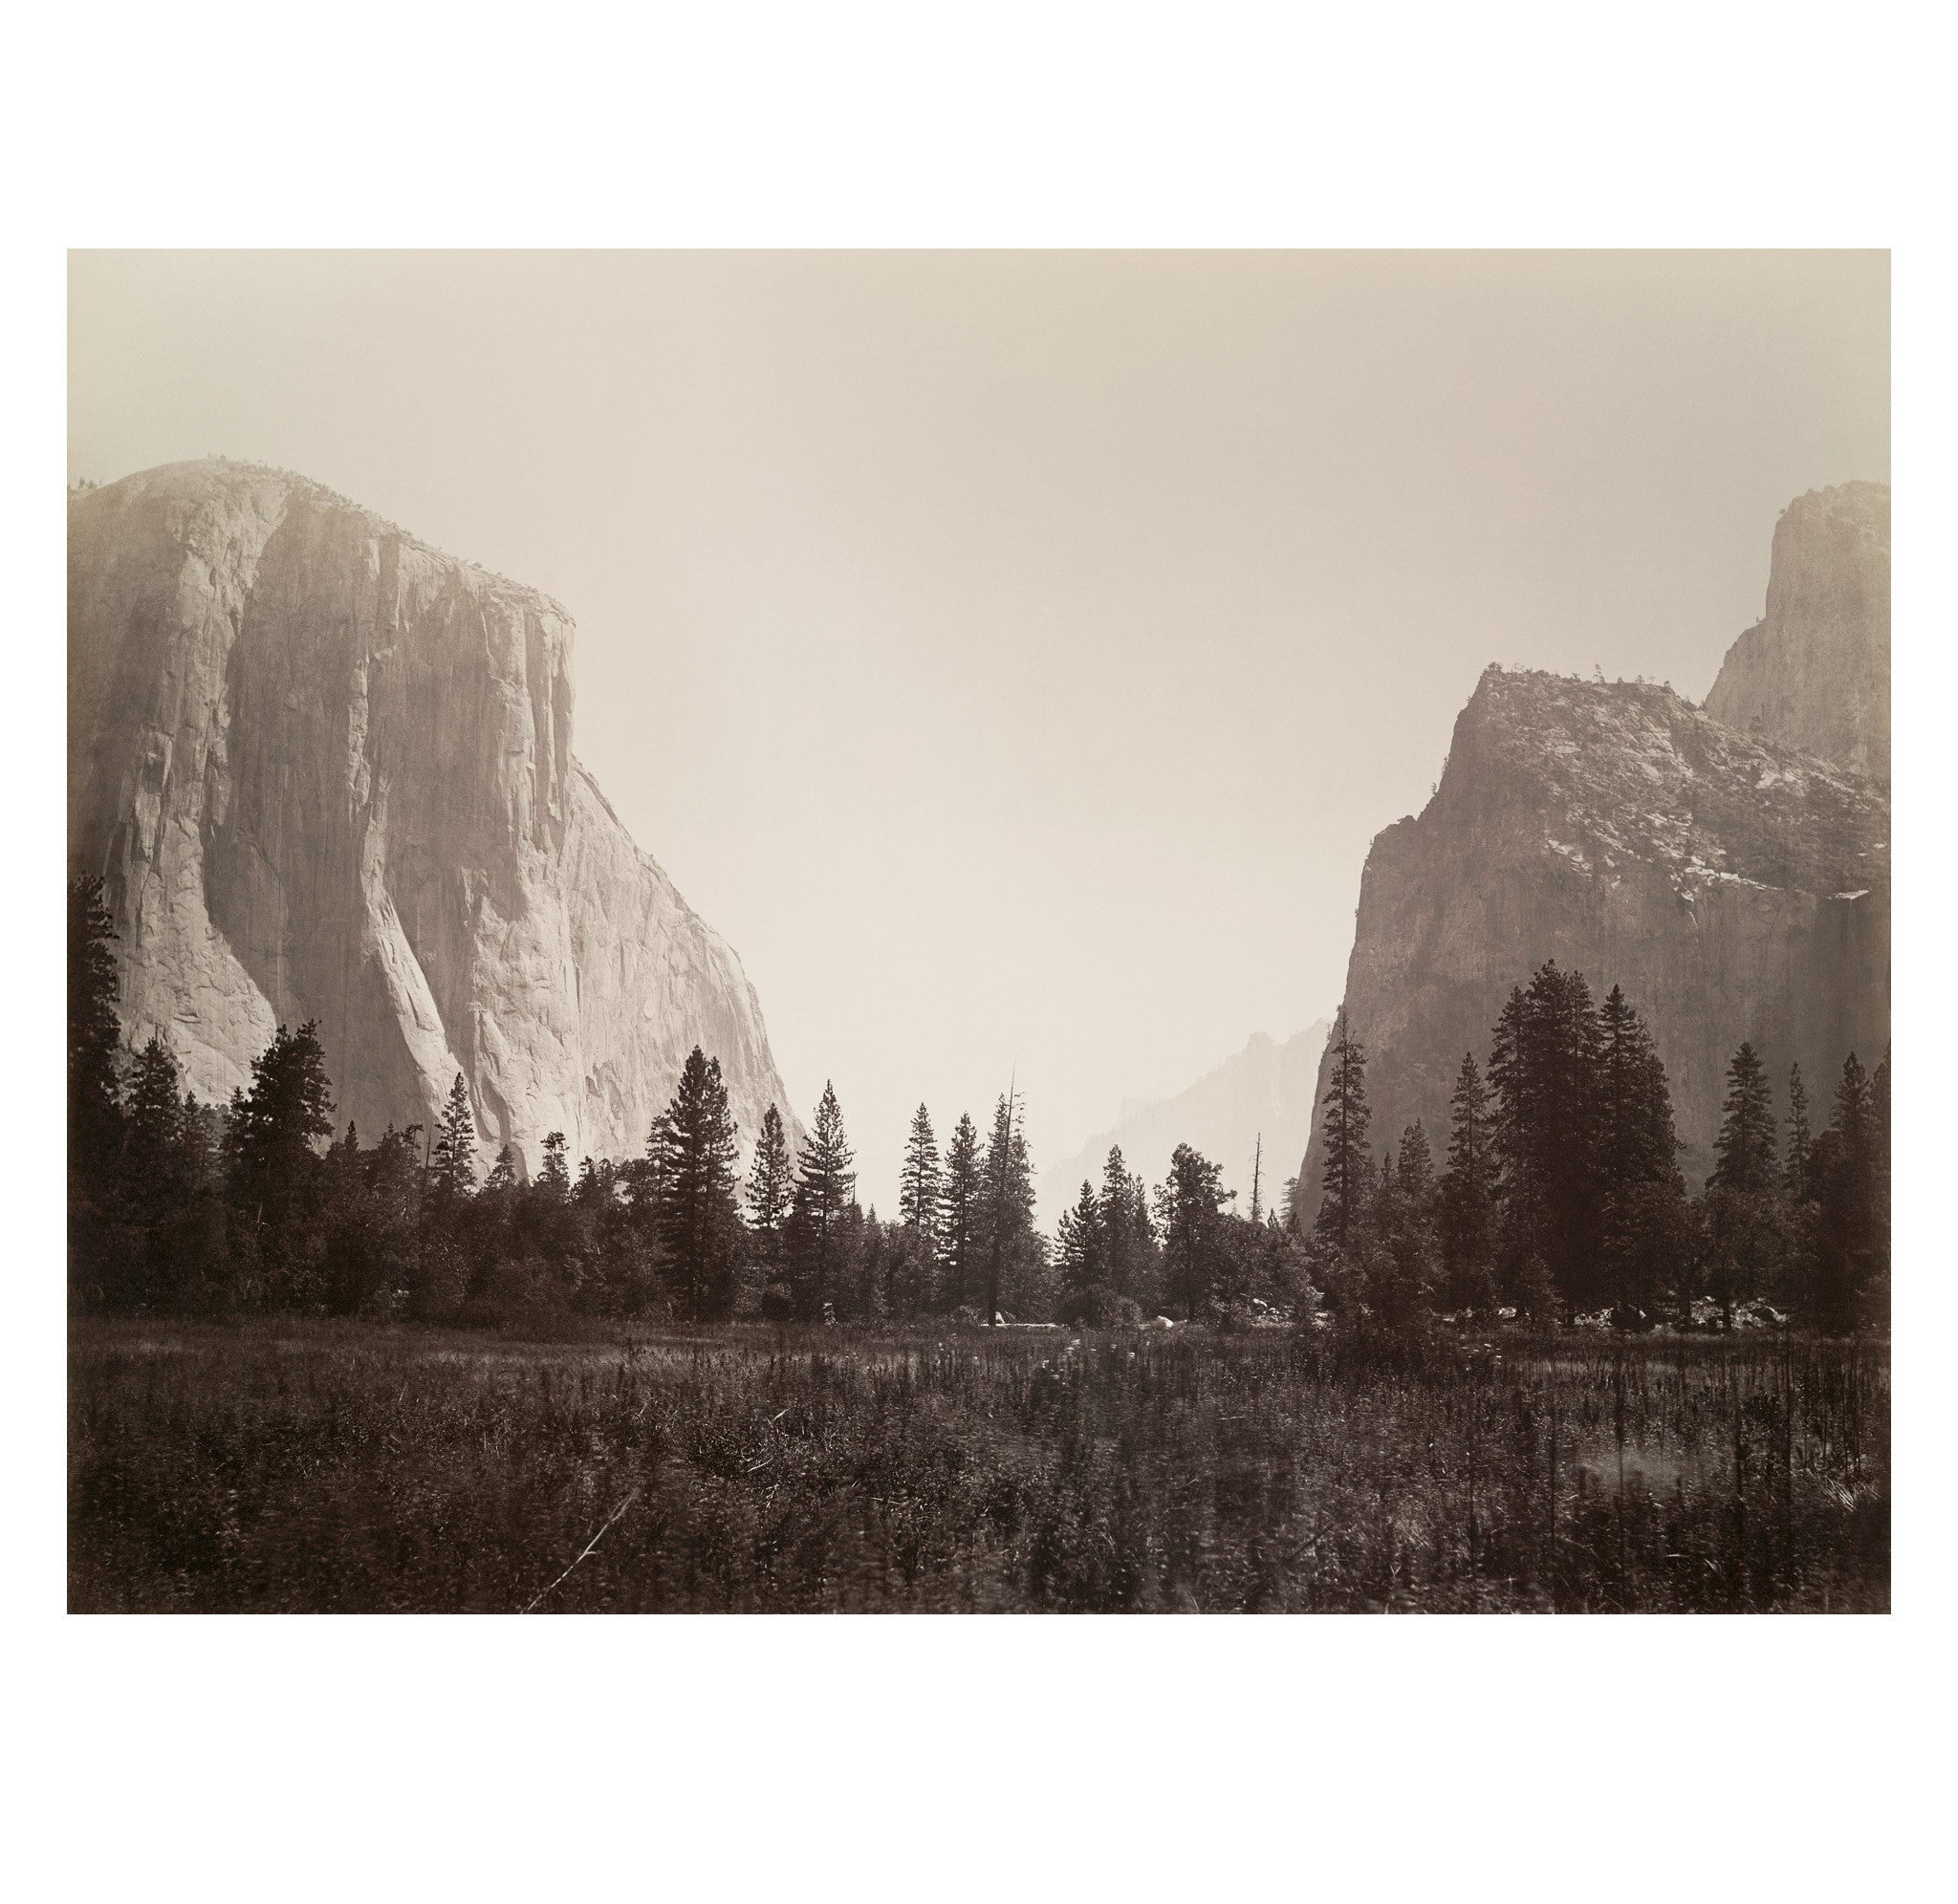 Carleton Watkins – Yosemite Valley 2